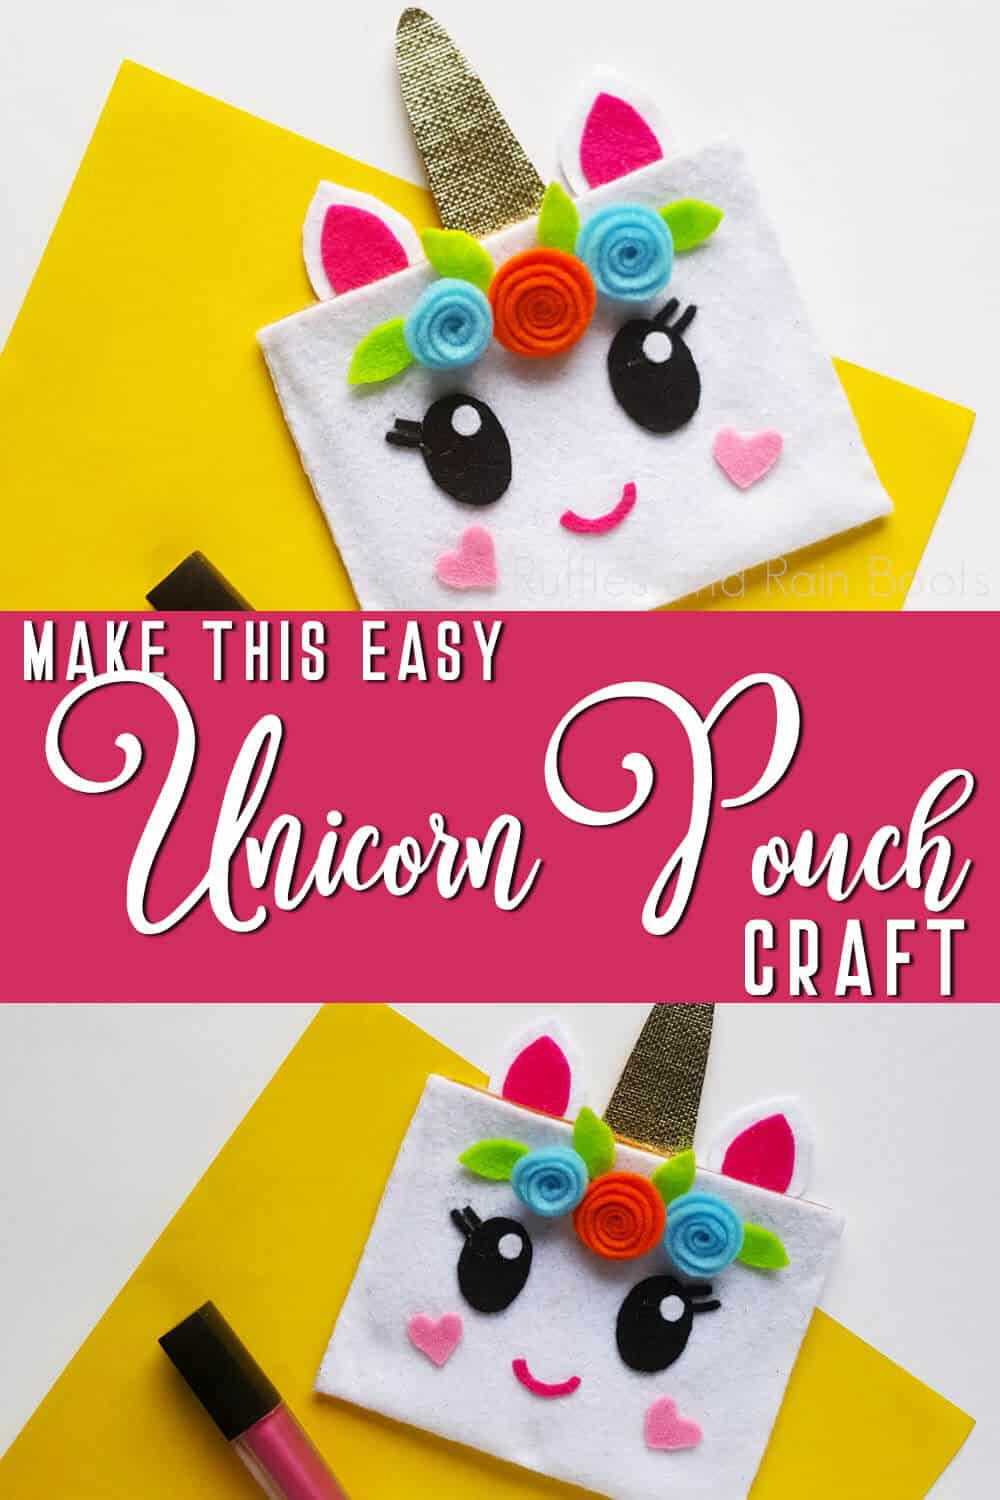 photo collage of easy unicorn makeup bag craft with text which reads make this easy unicorn pouch craft